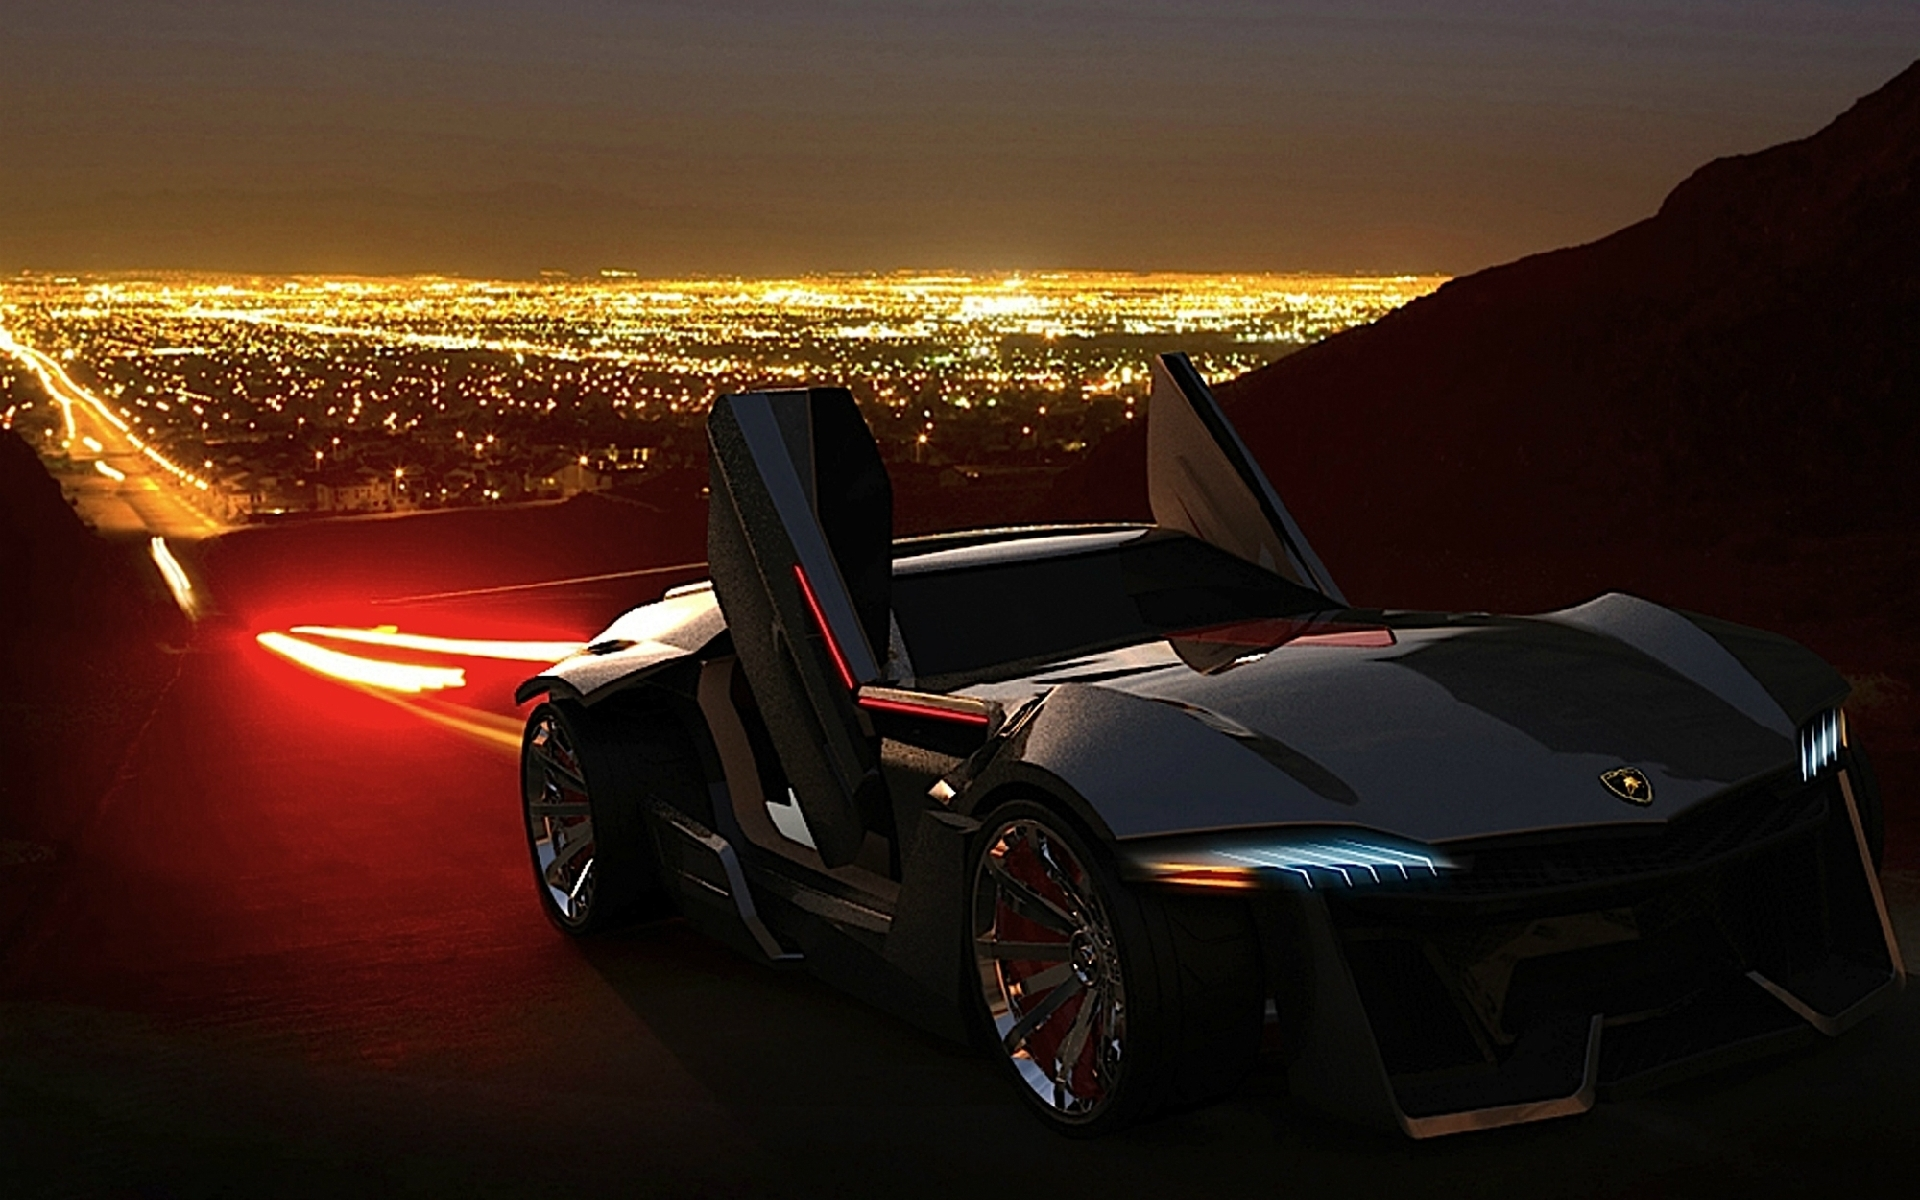 25423 download wallpaper Transport, Auto, Lamborghini screensavers and pictures for free